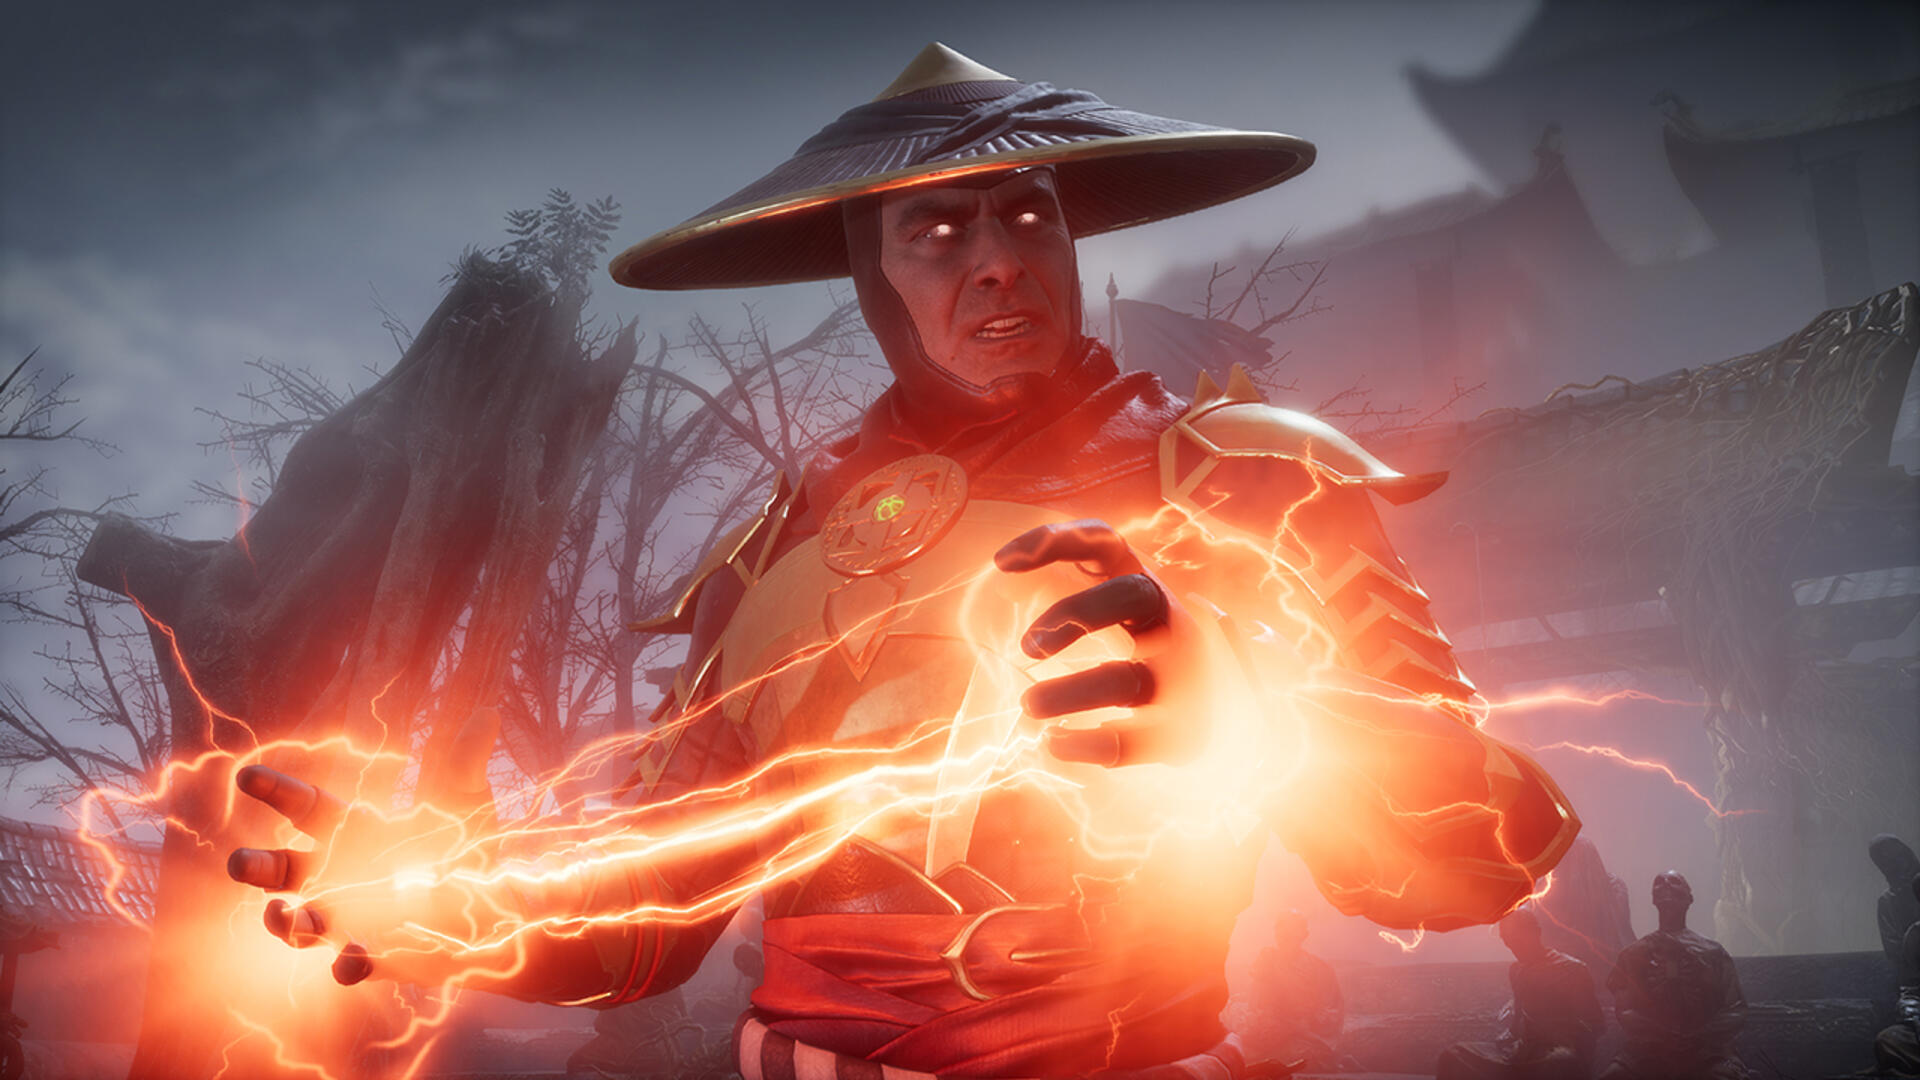 Mortal Kombat 11 Launch Trailer Goes Full Nostalgia With Remixed Theme Music